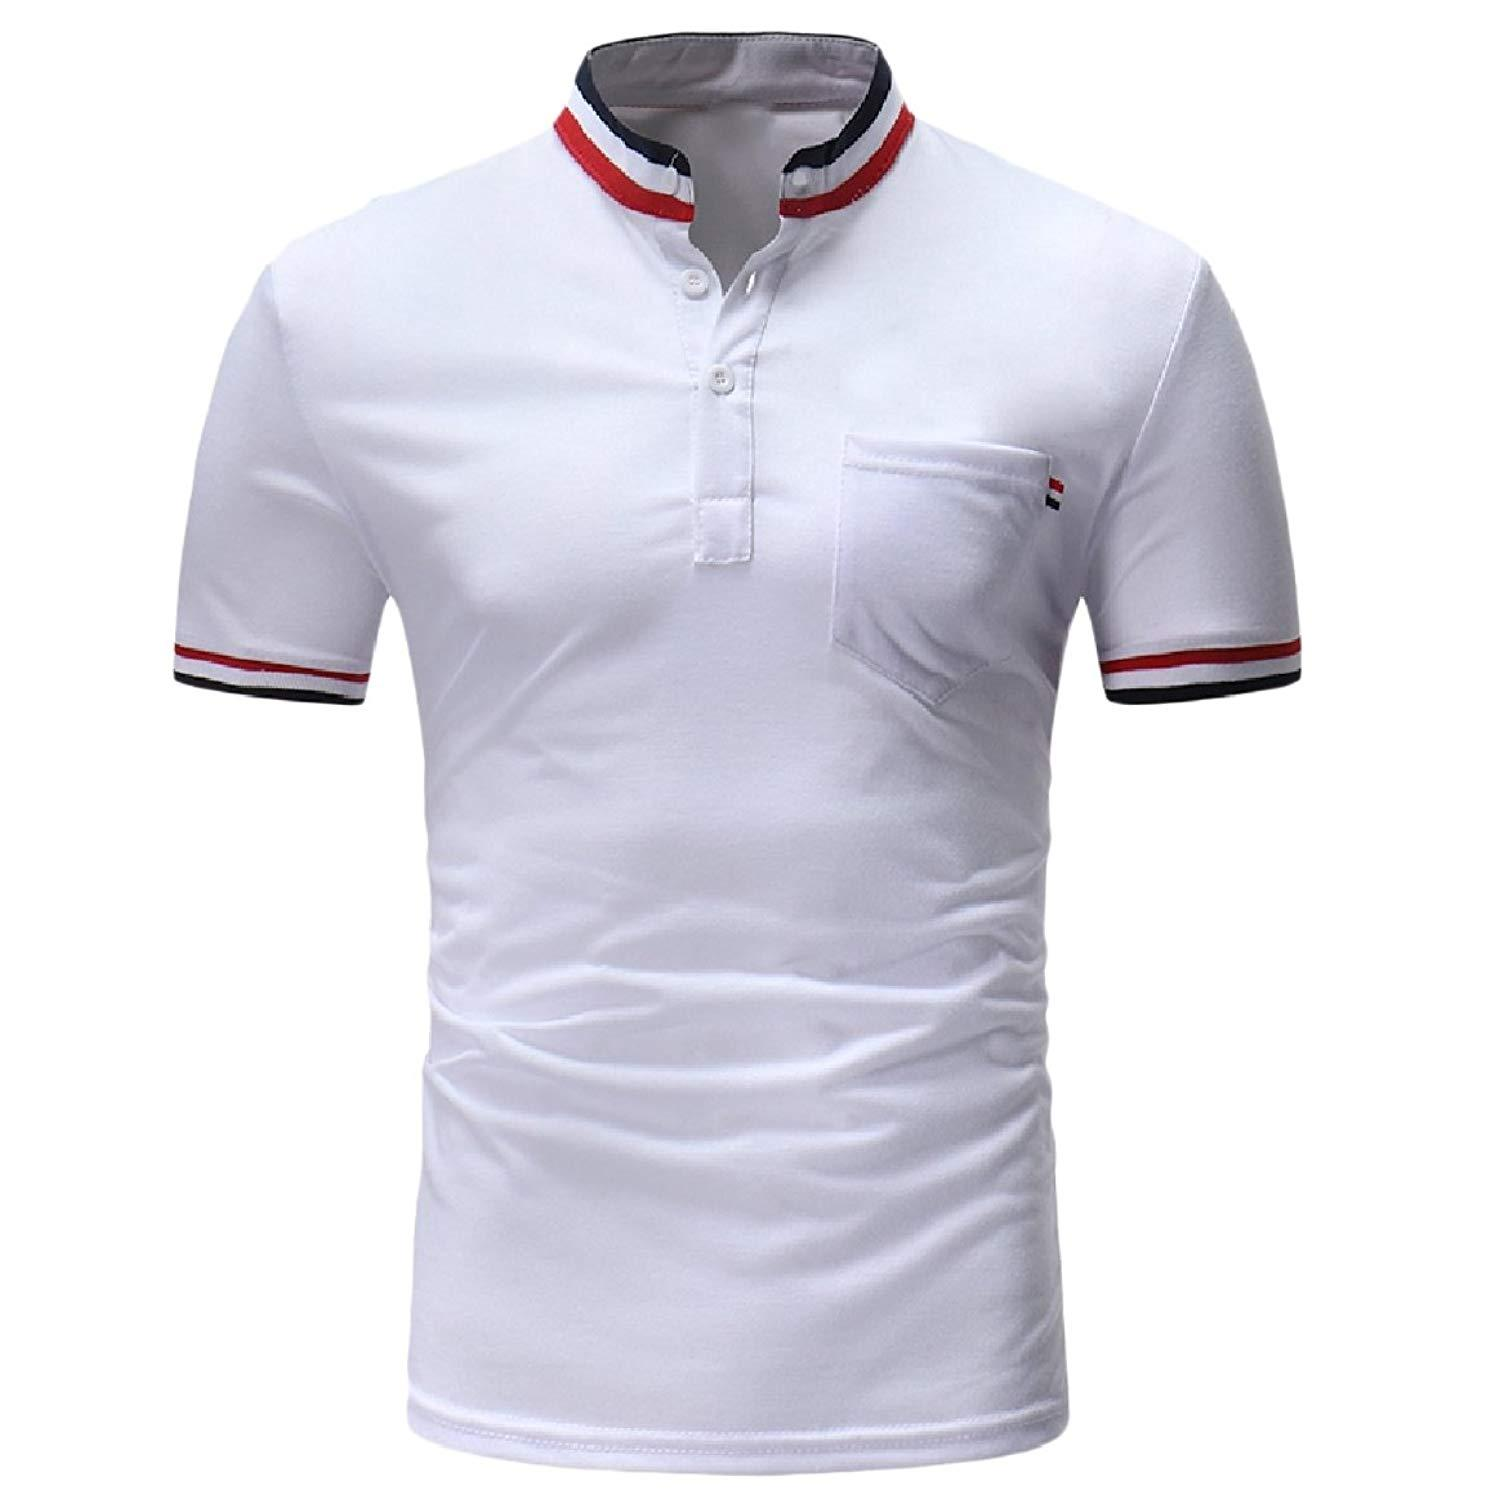 best value 2b19b ae063 Großhandel Herren Kurzarm Polo Vogue Stehkragen Casual Dress T Shirt Von  Goldenharvest, $30.45 Auf De.Dhgate.Com | Dhgate